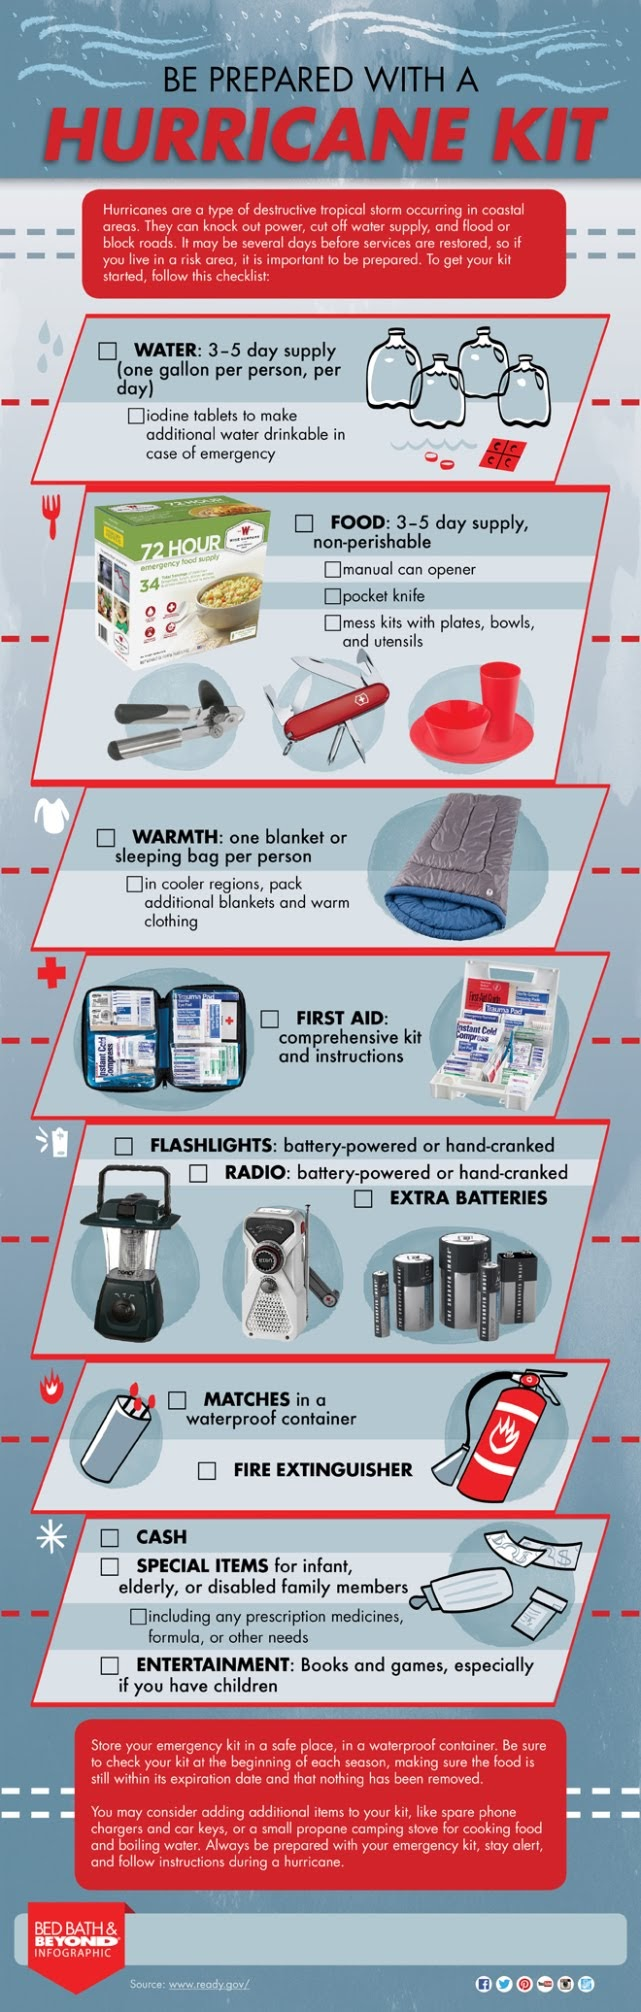 Be Prepared With a Hurricane Kit #infographic